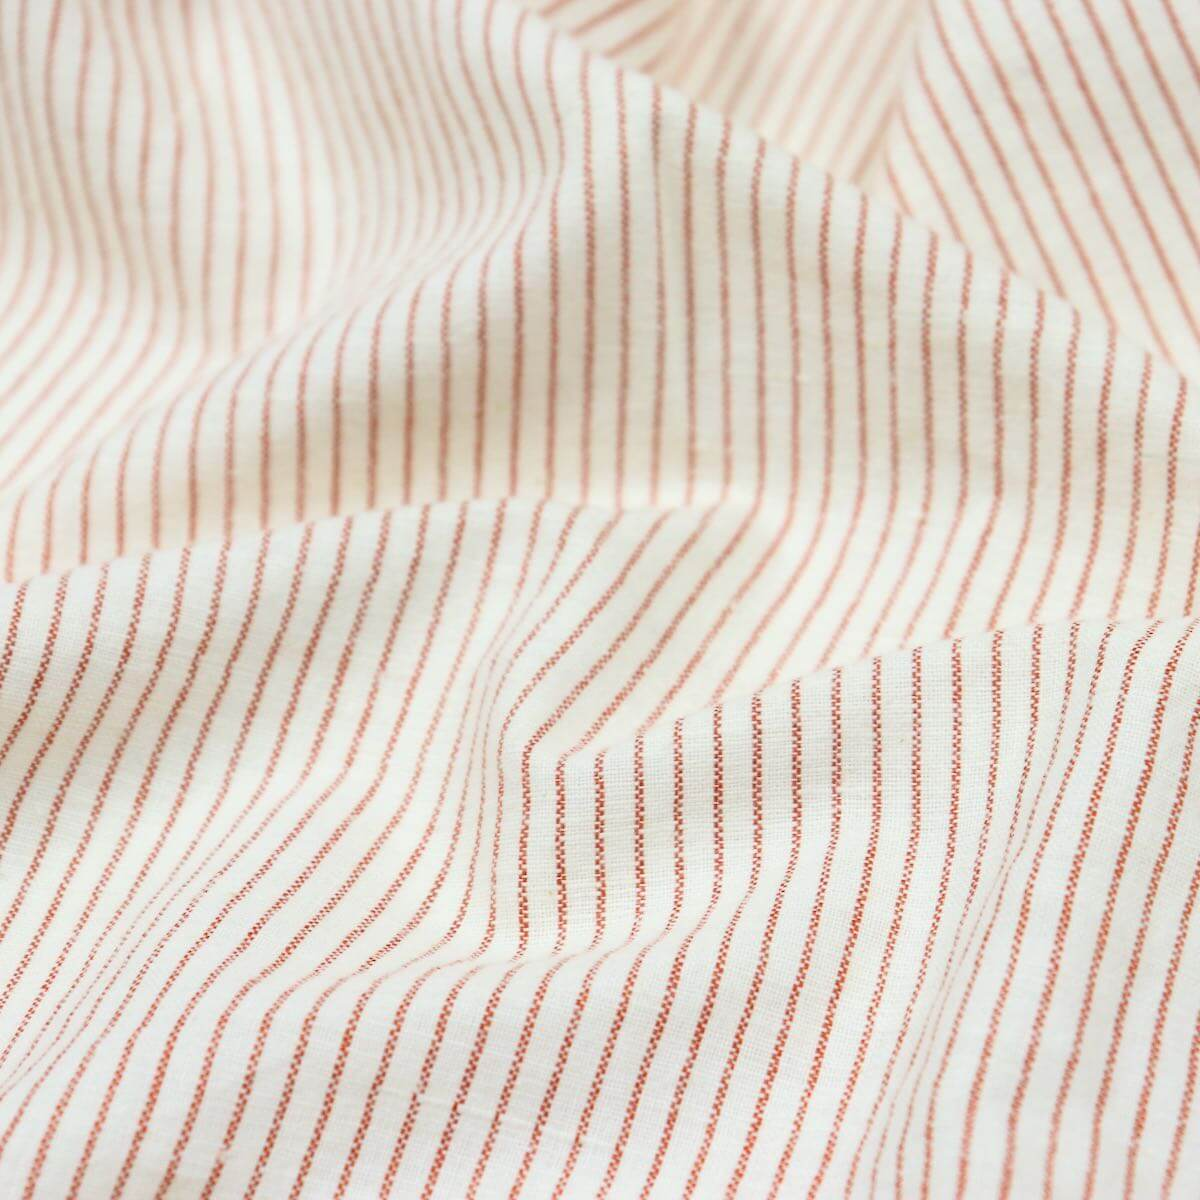 warm toned handloom striped cotton fabric